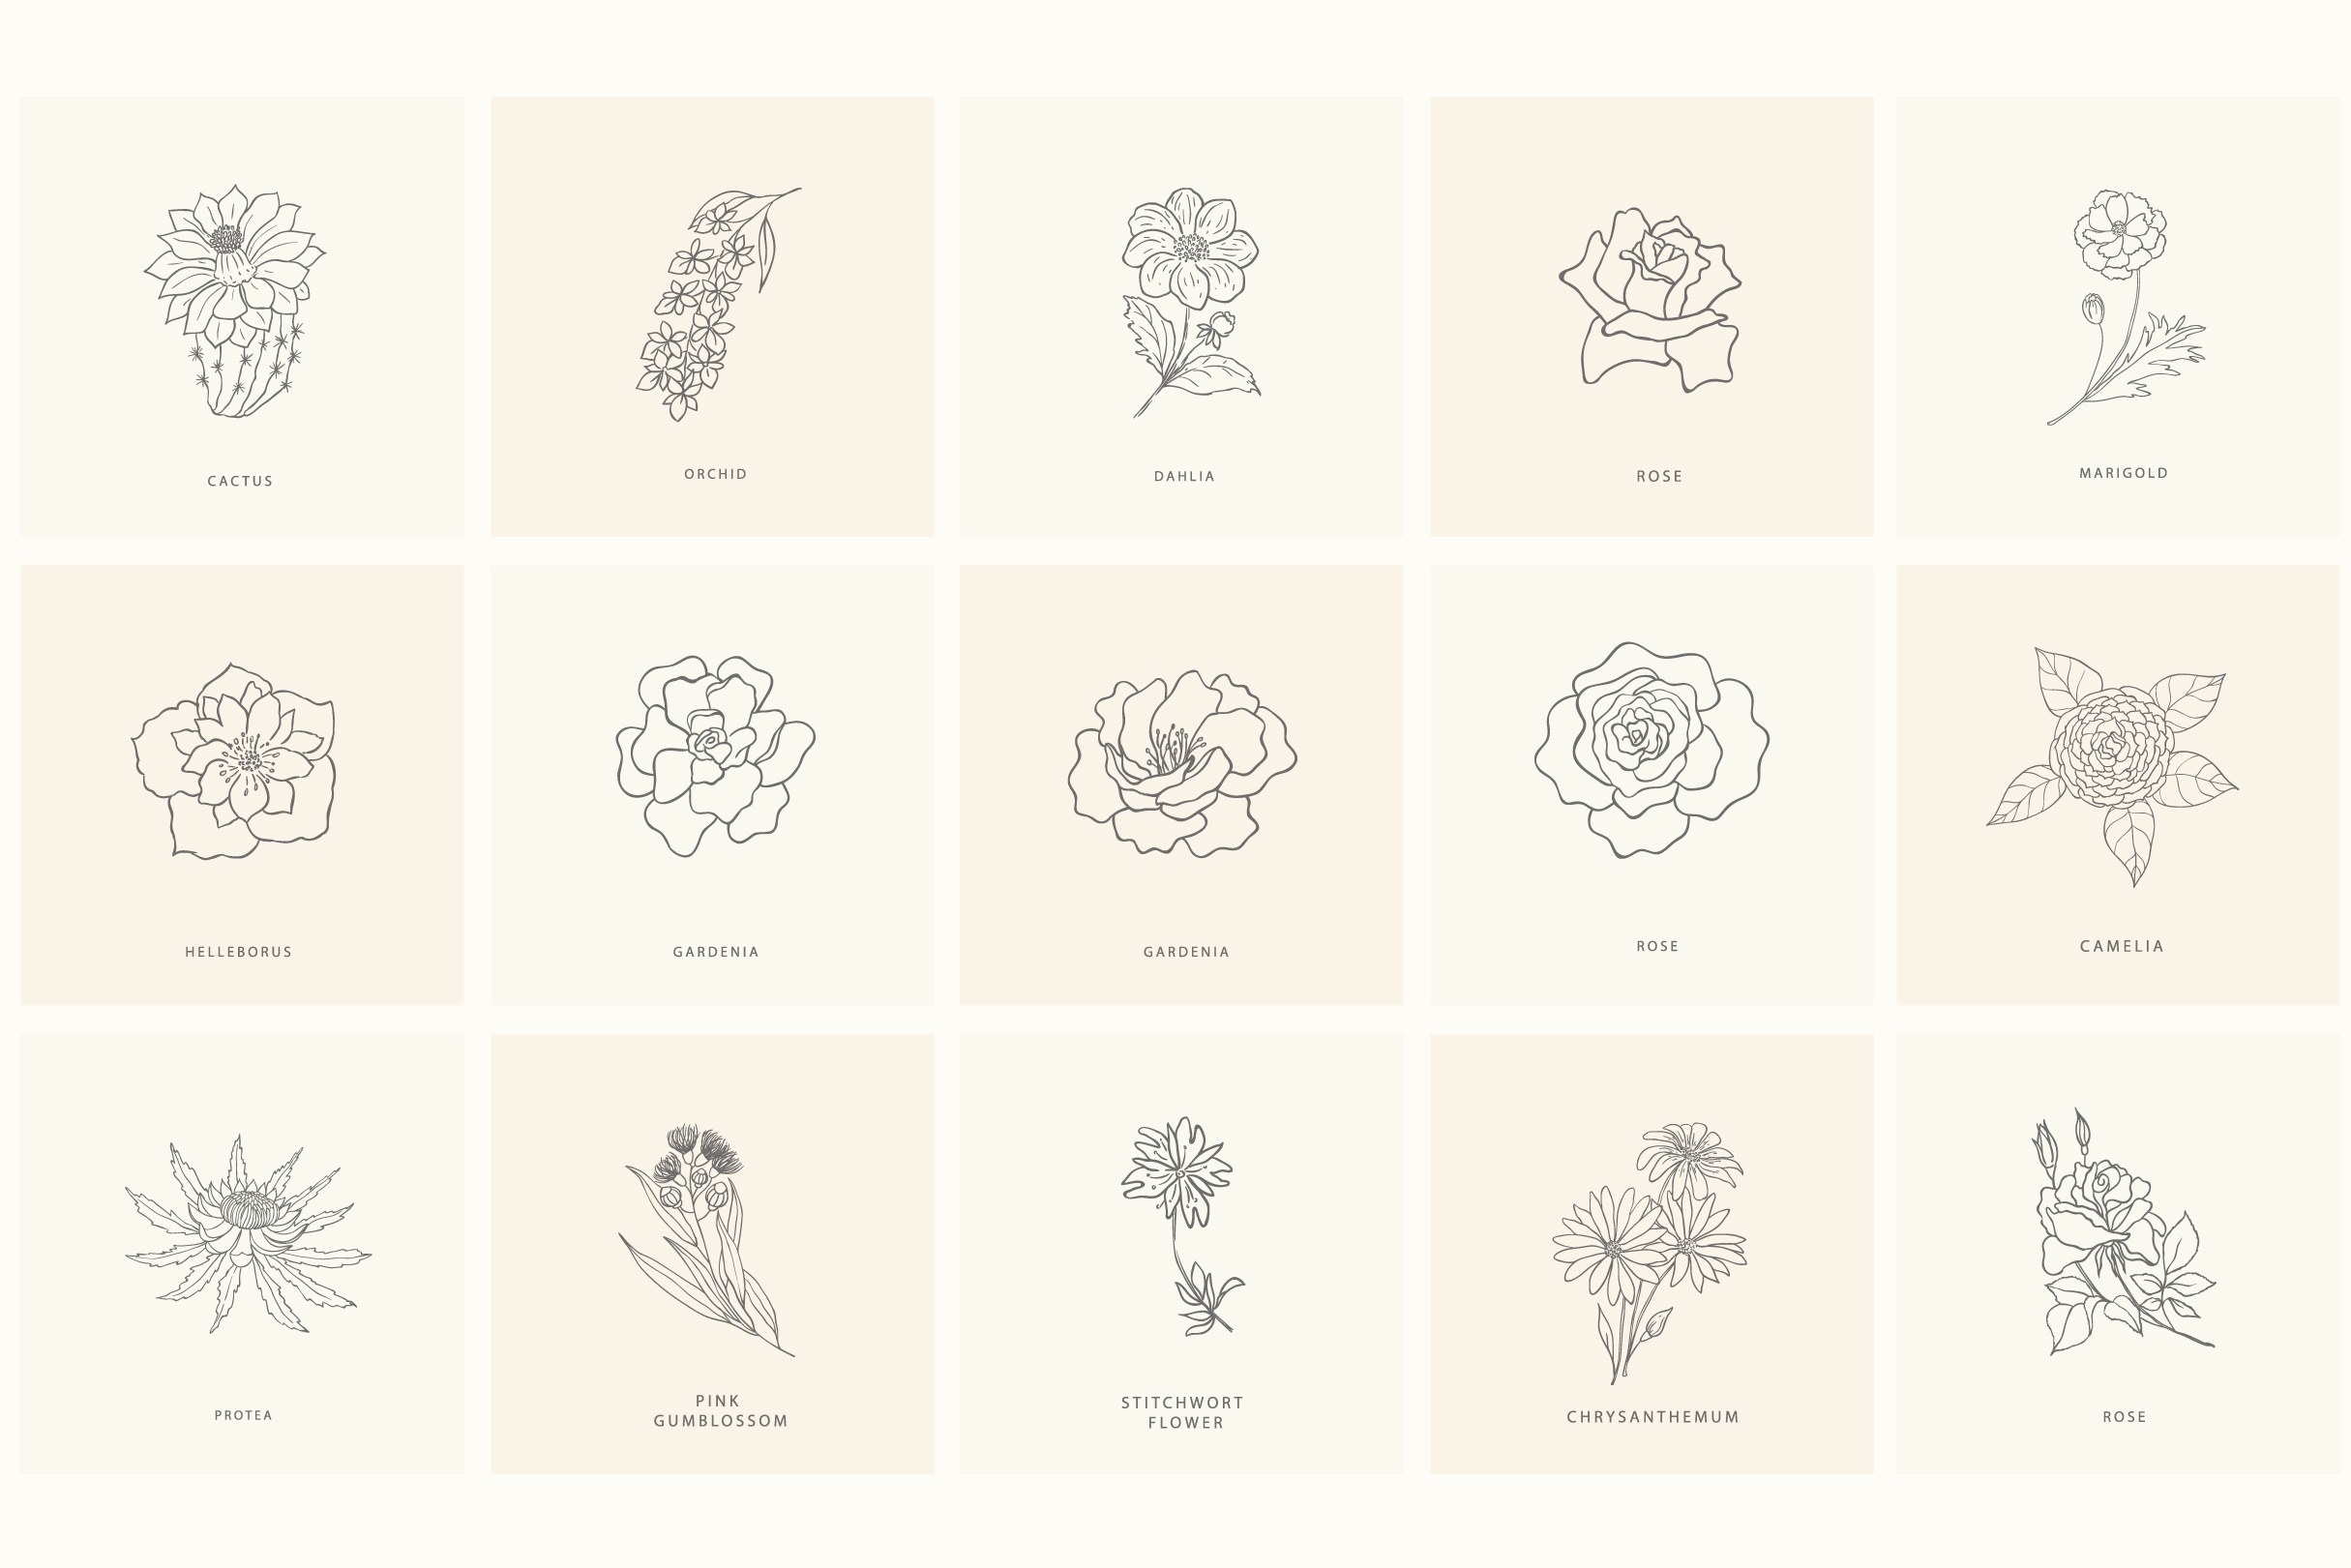 Birth-Flowers. Trendy Plants & Logos Line Art